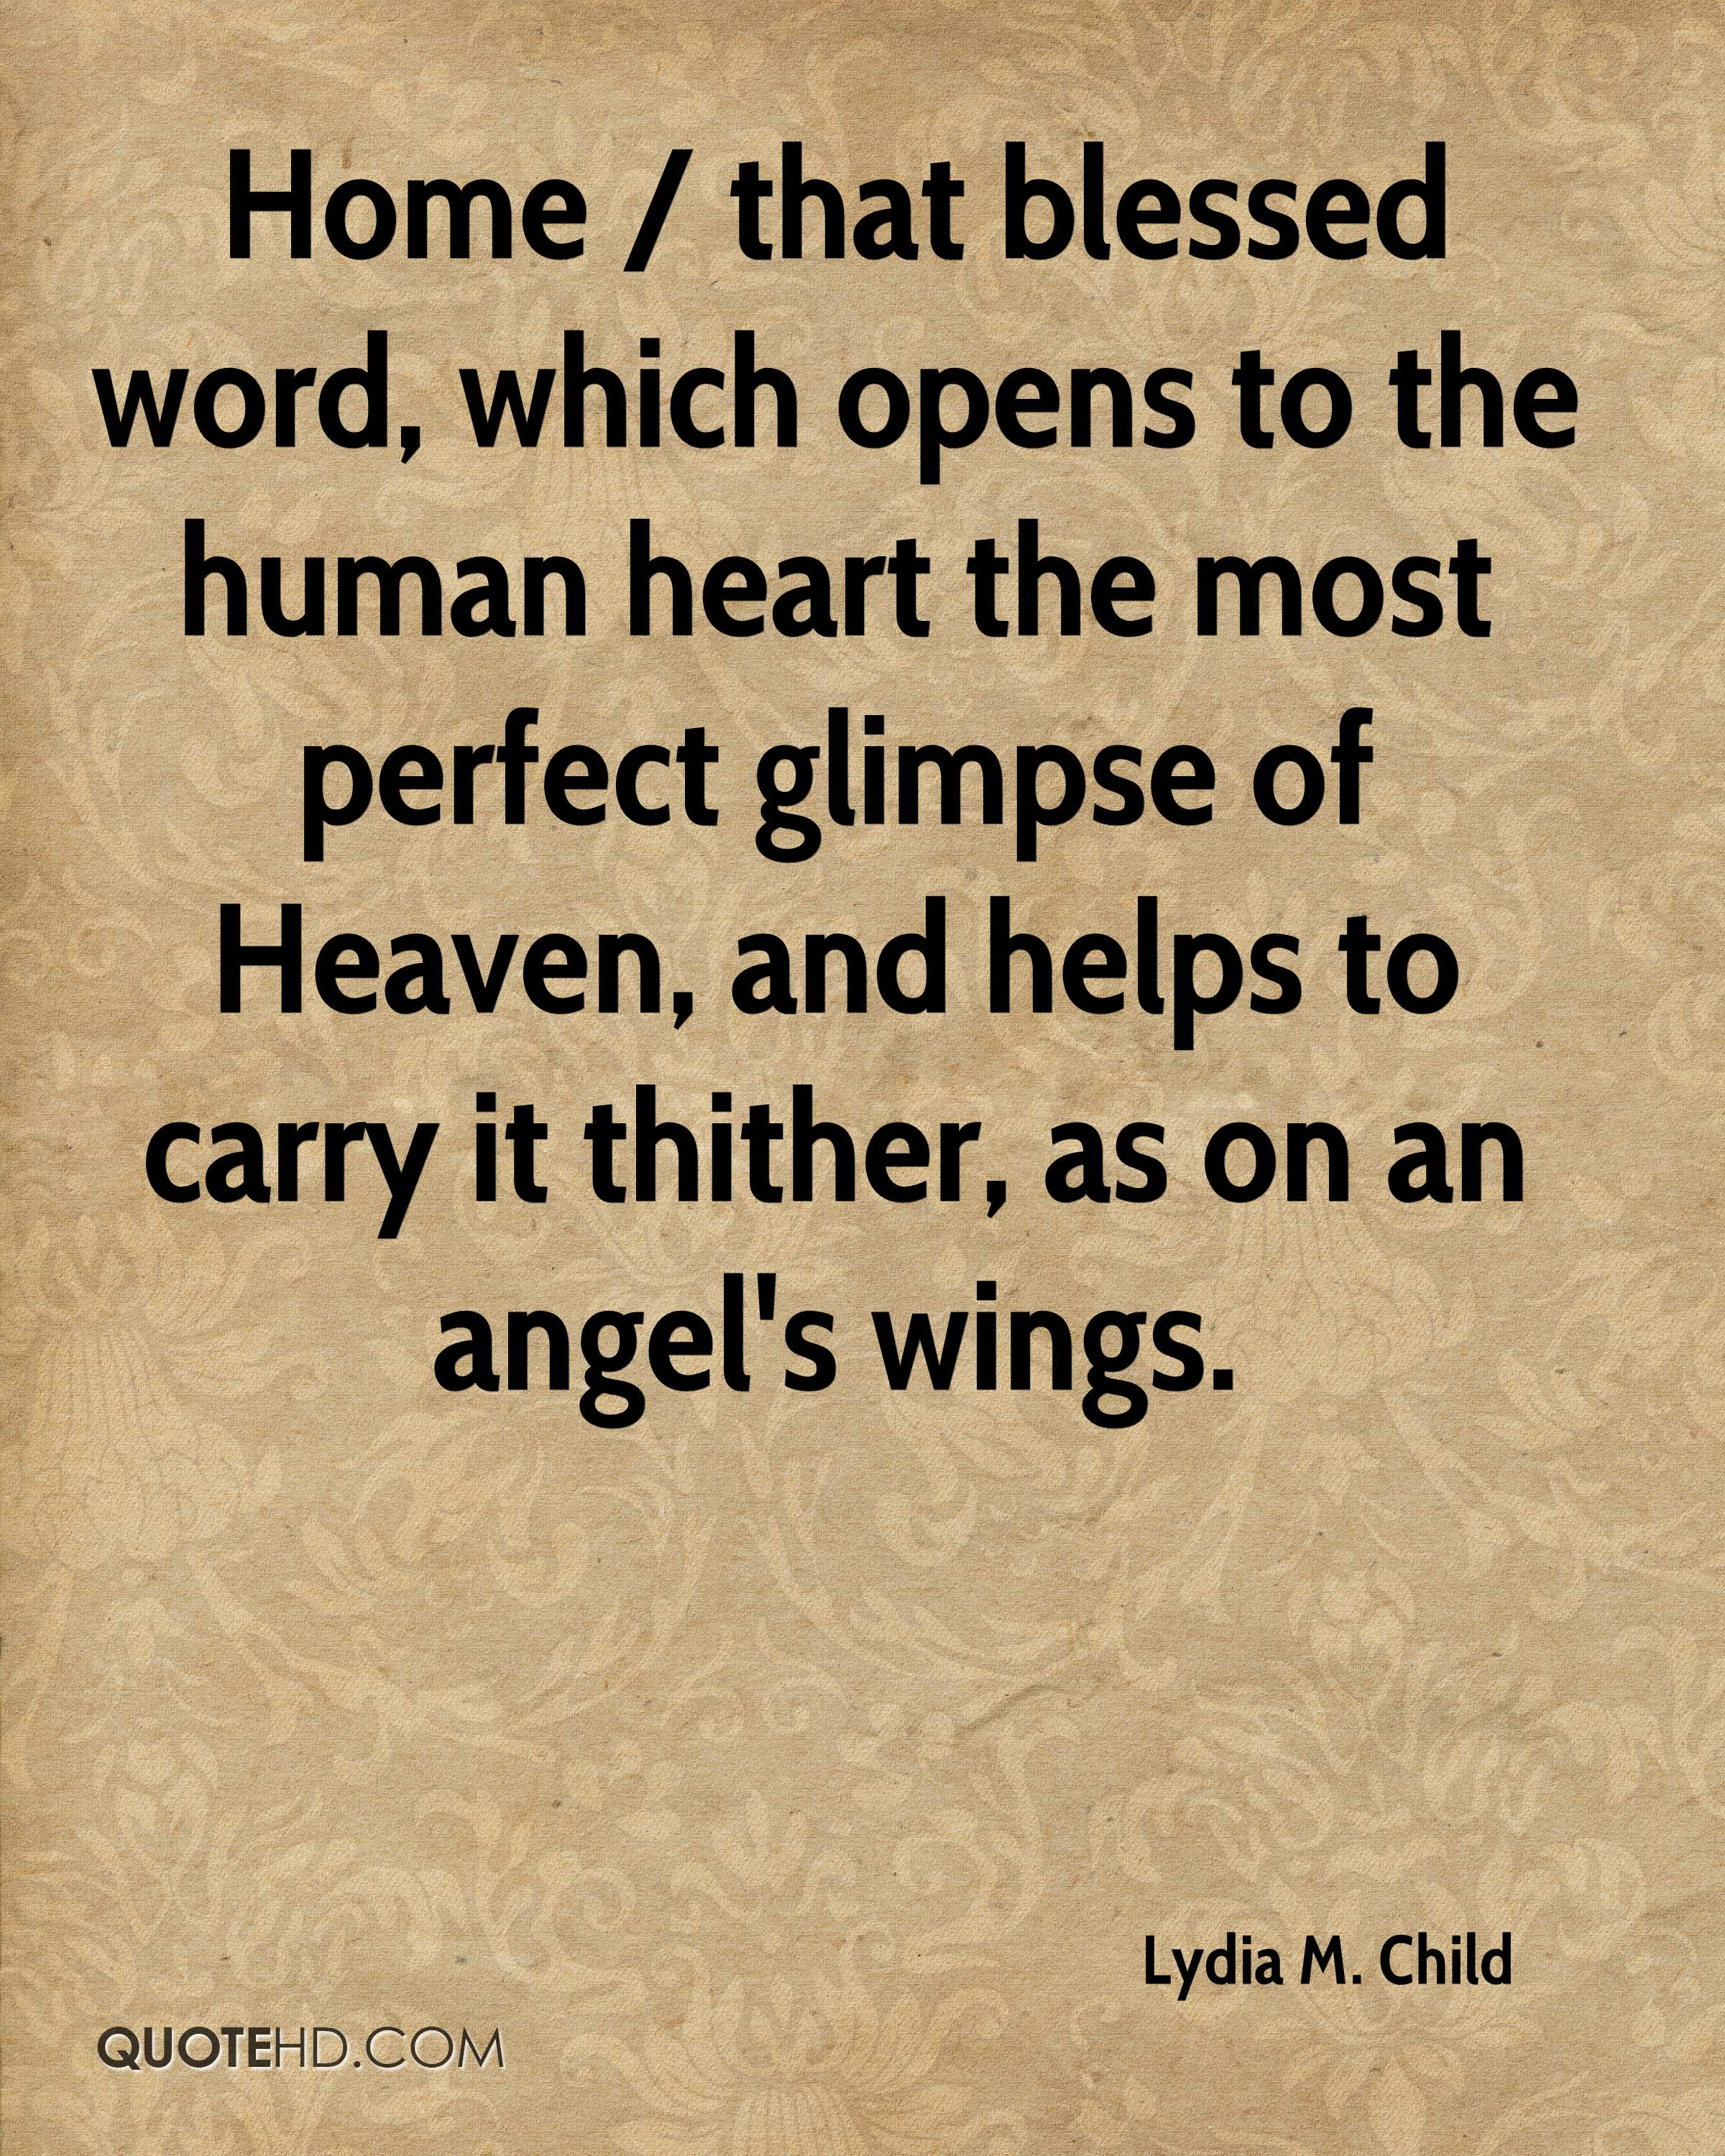 Home / that blessed word, which opens to the human heart the most perfect glimpse of Heaven, and helps to carry it thither, as on an angel's wings.